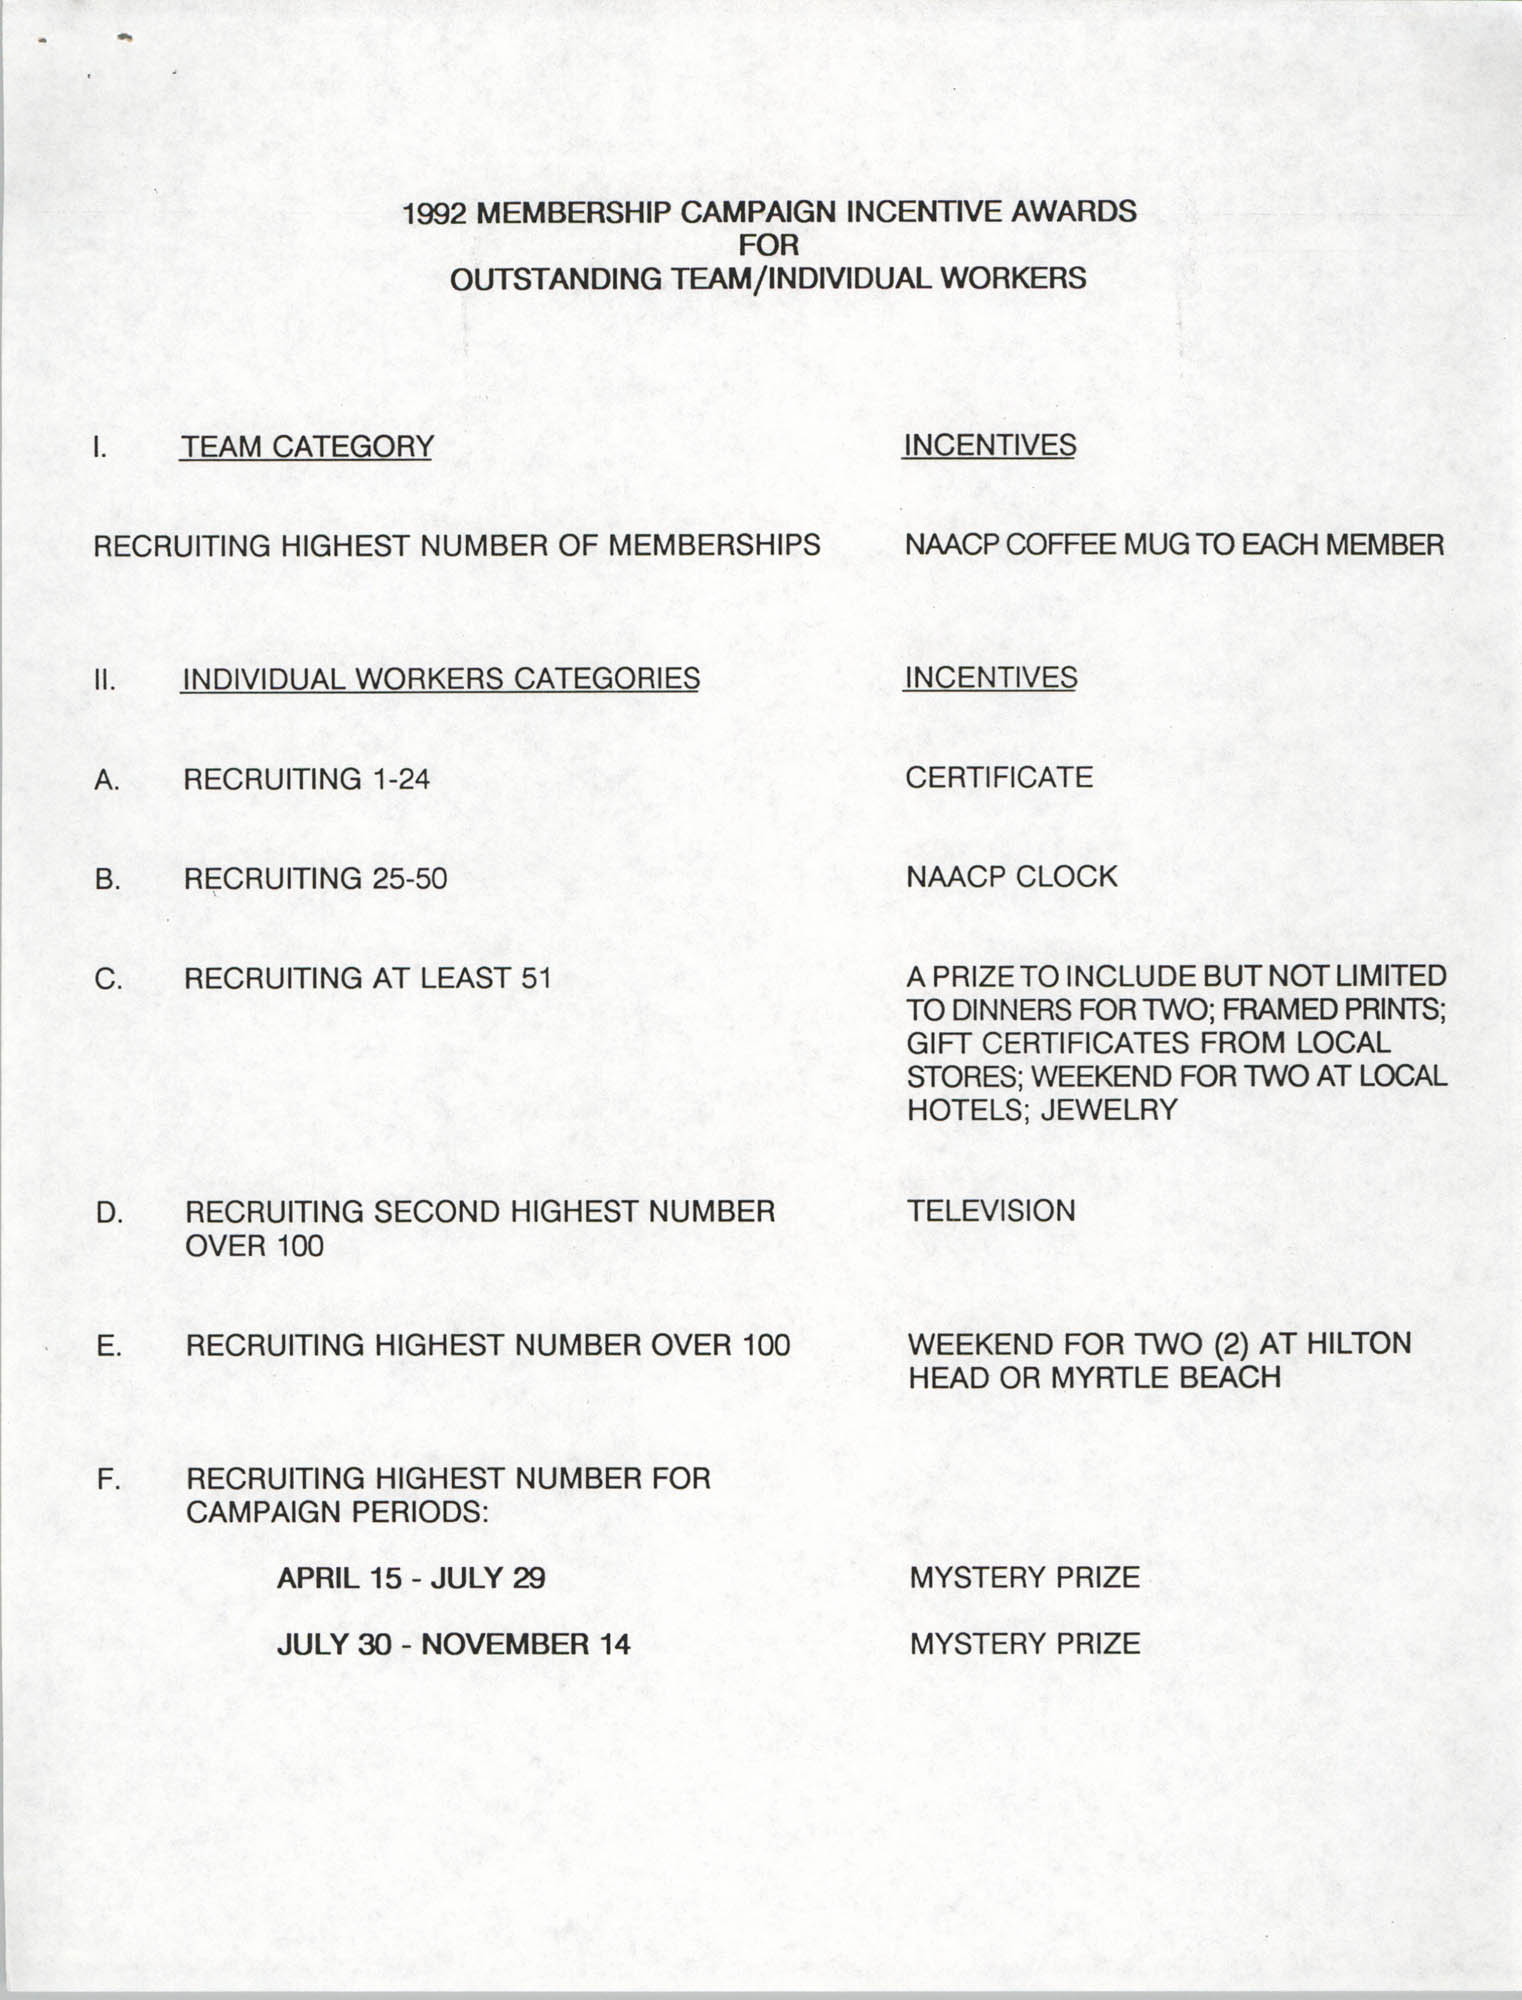 1992 Membership Campaign Incentive Awards for Outstanding Team/Individual Workers